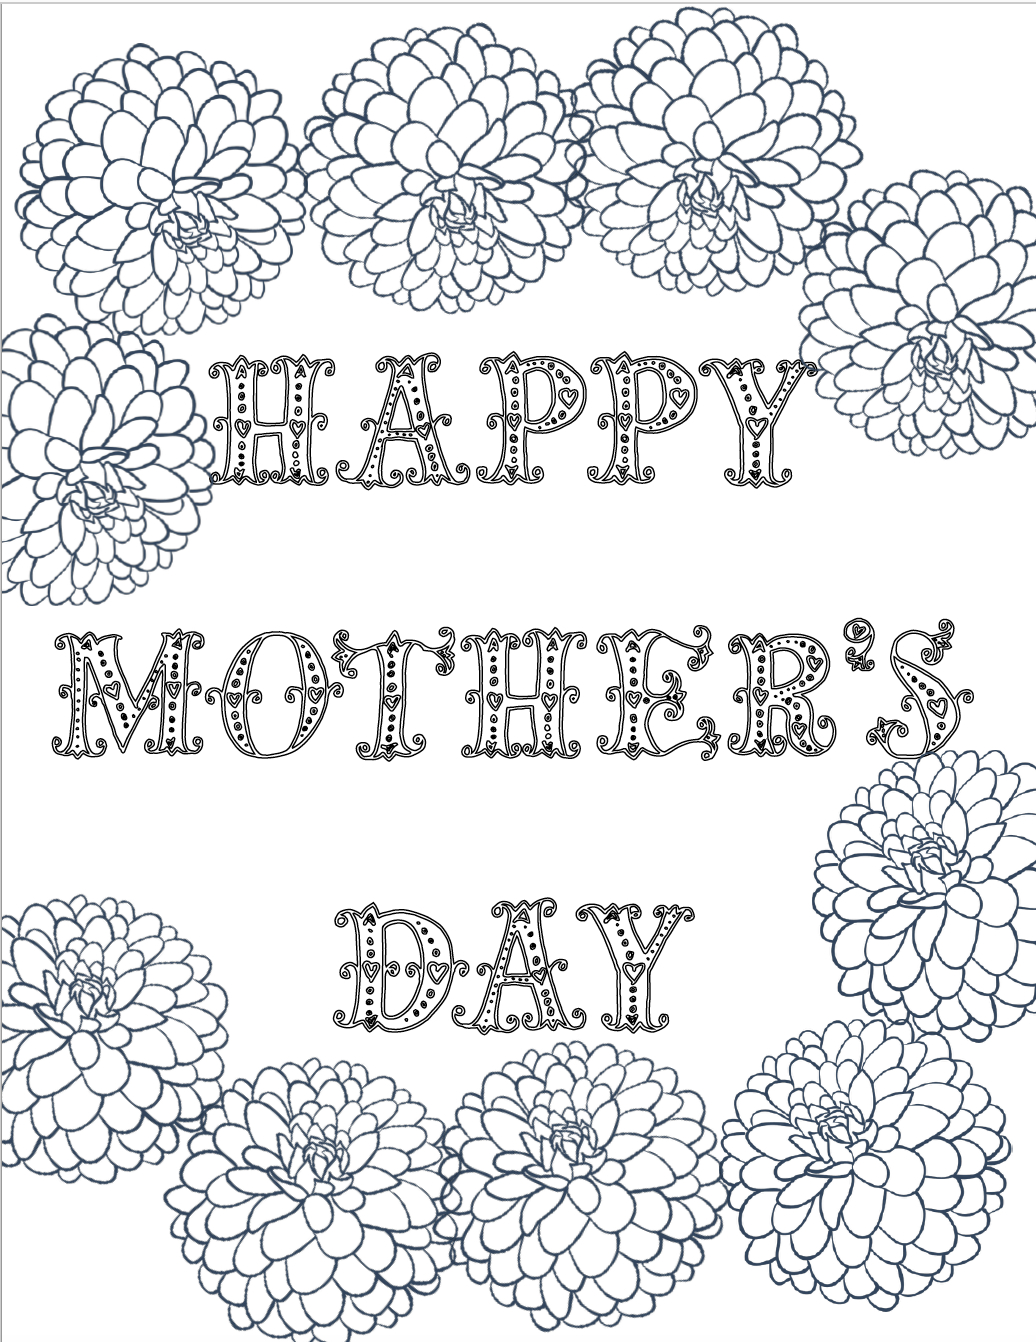 Free Printable Mother's Day Coloring Pages: 4 Designs - Free Printable Mothers Day Coloring Sheets